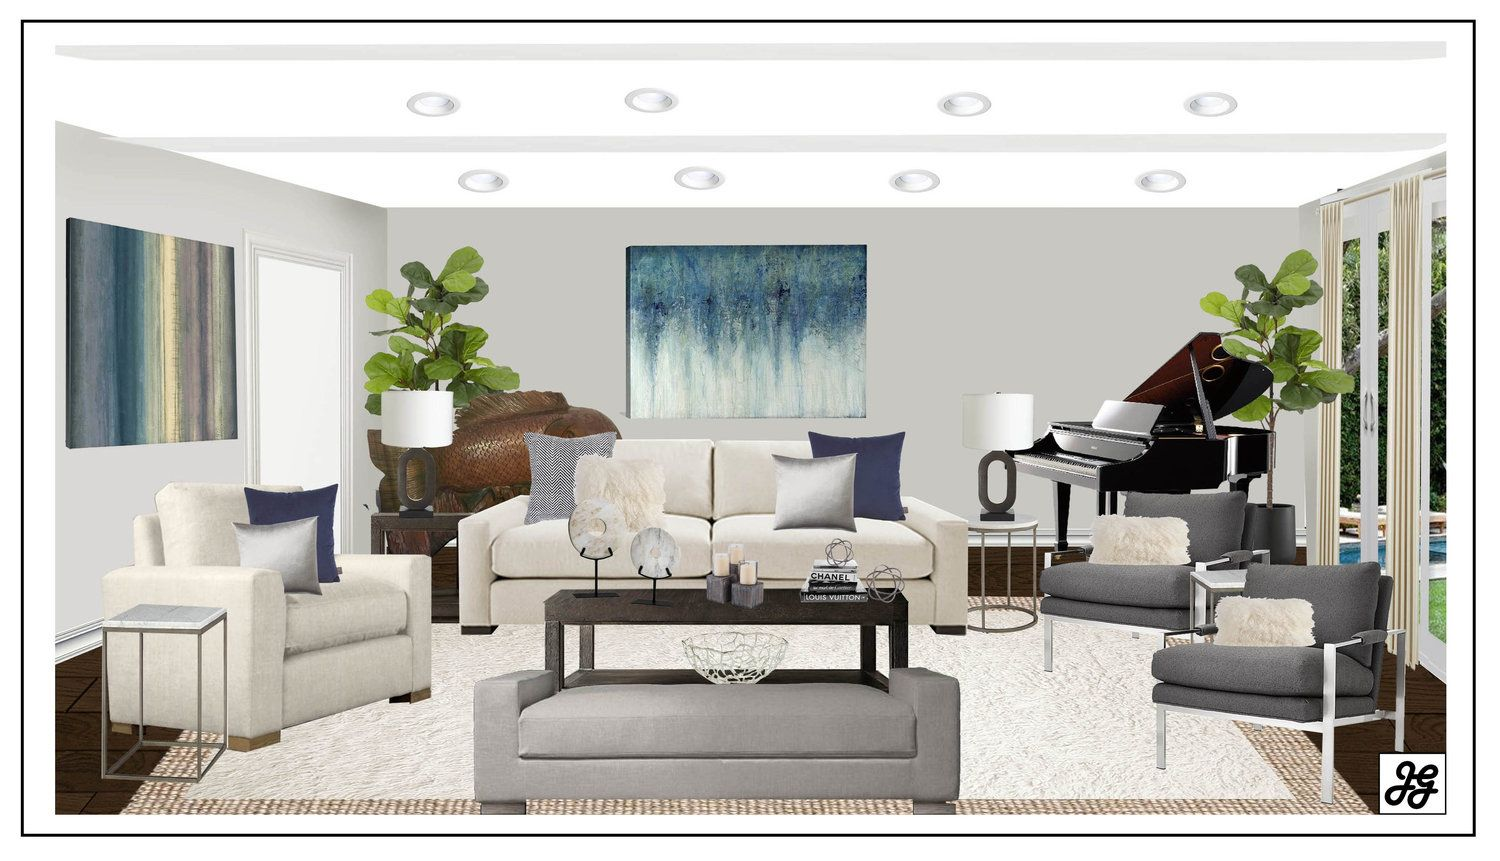 Living Room Design Online Beauteous Contemporary Living Room Design Board Modern Farmhouse Living Room Design Ideas